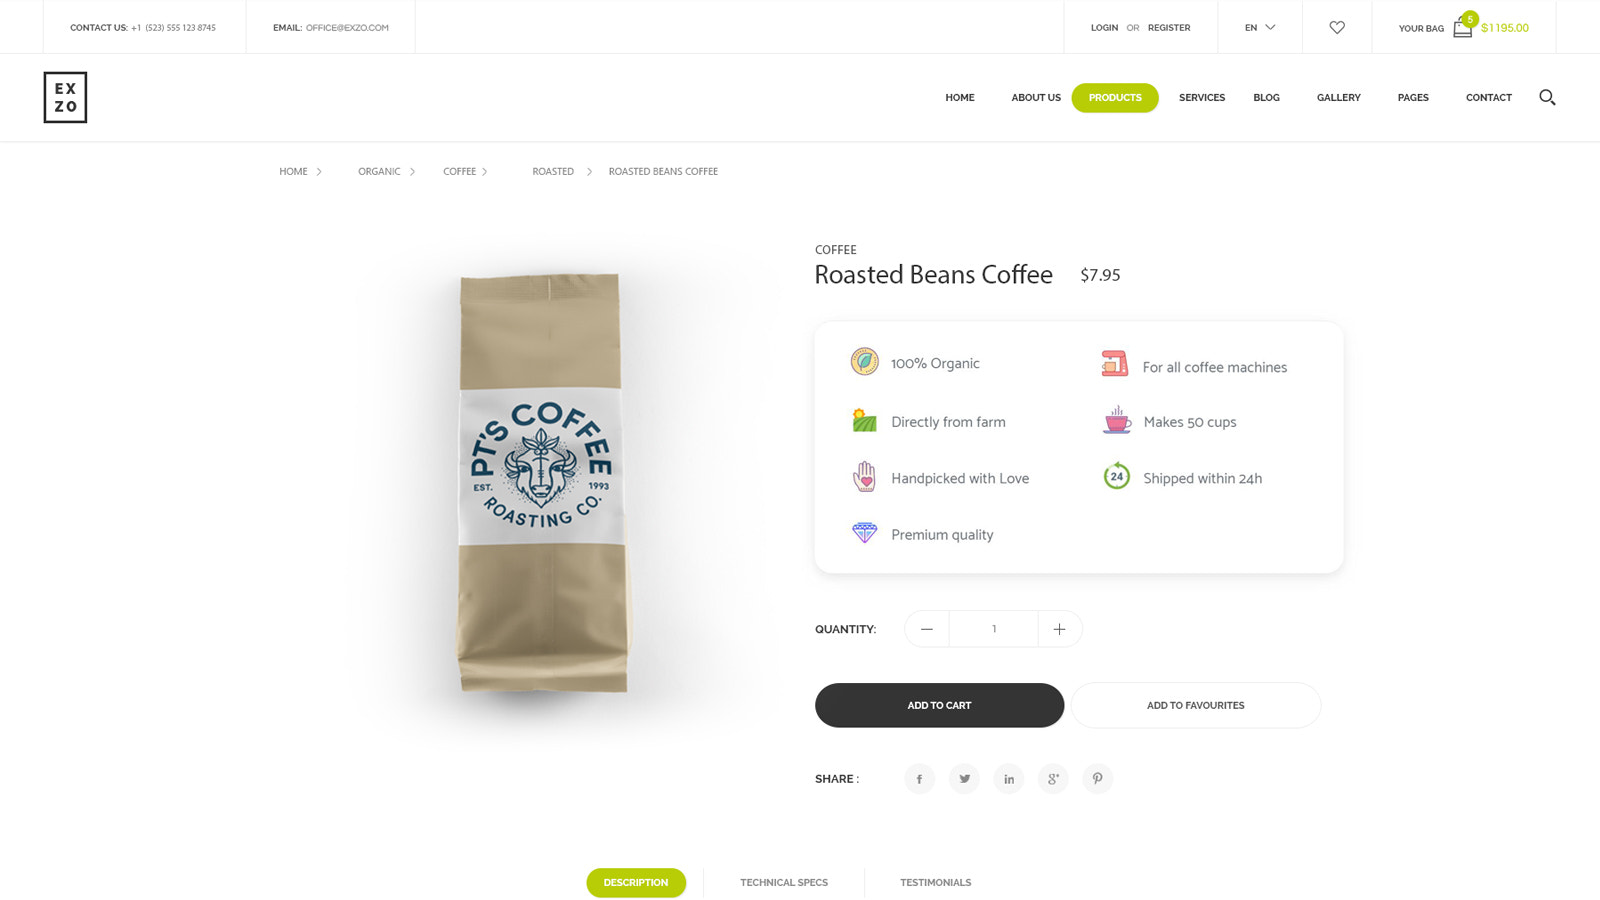 Product info for coffee which converts